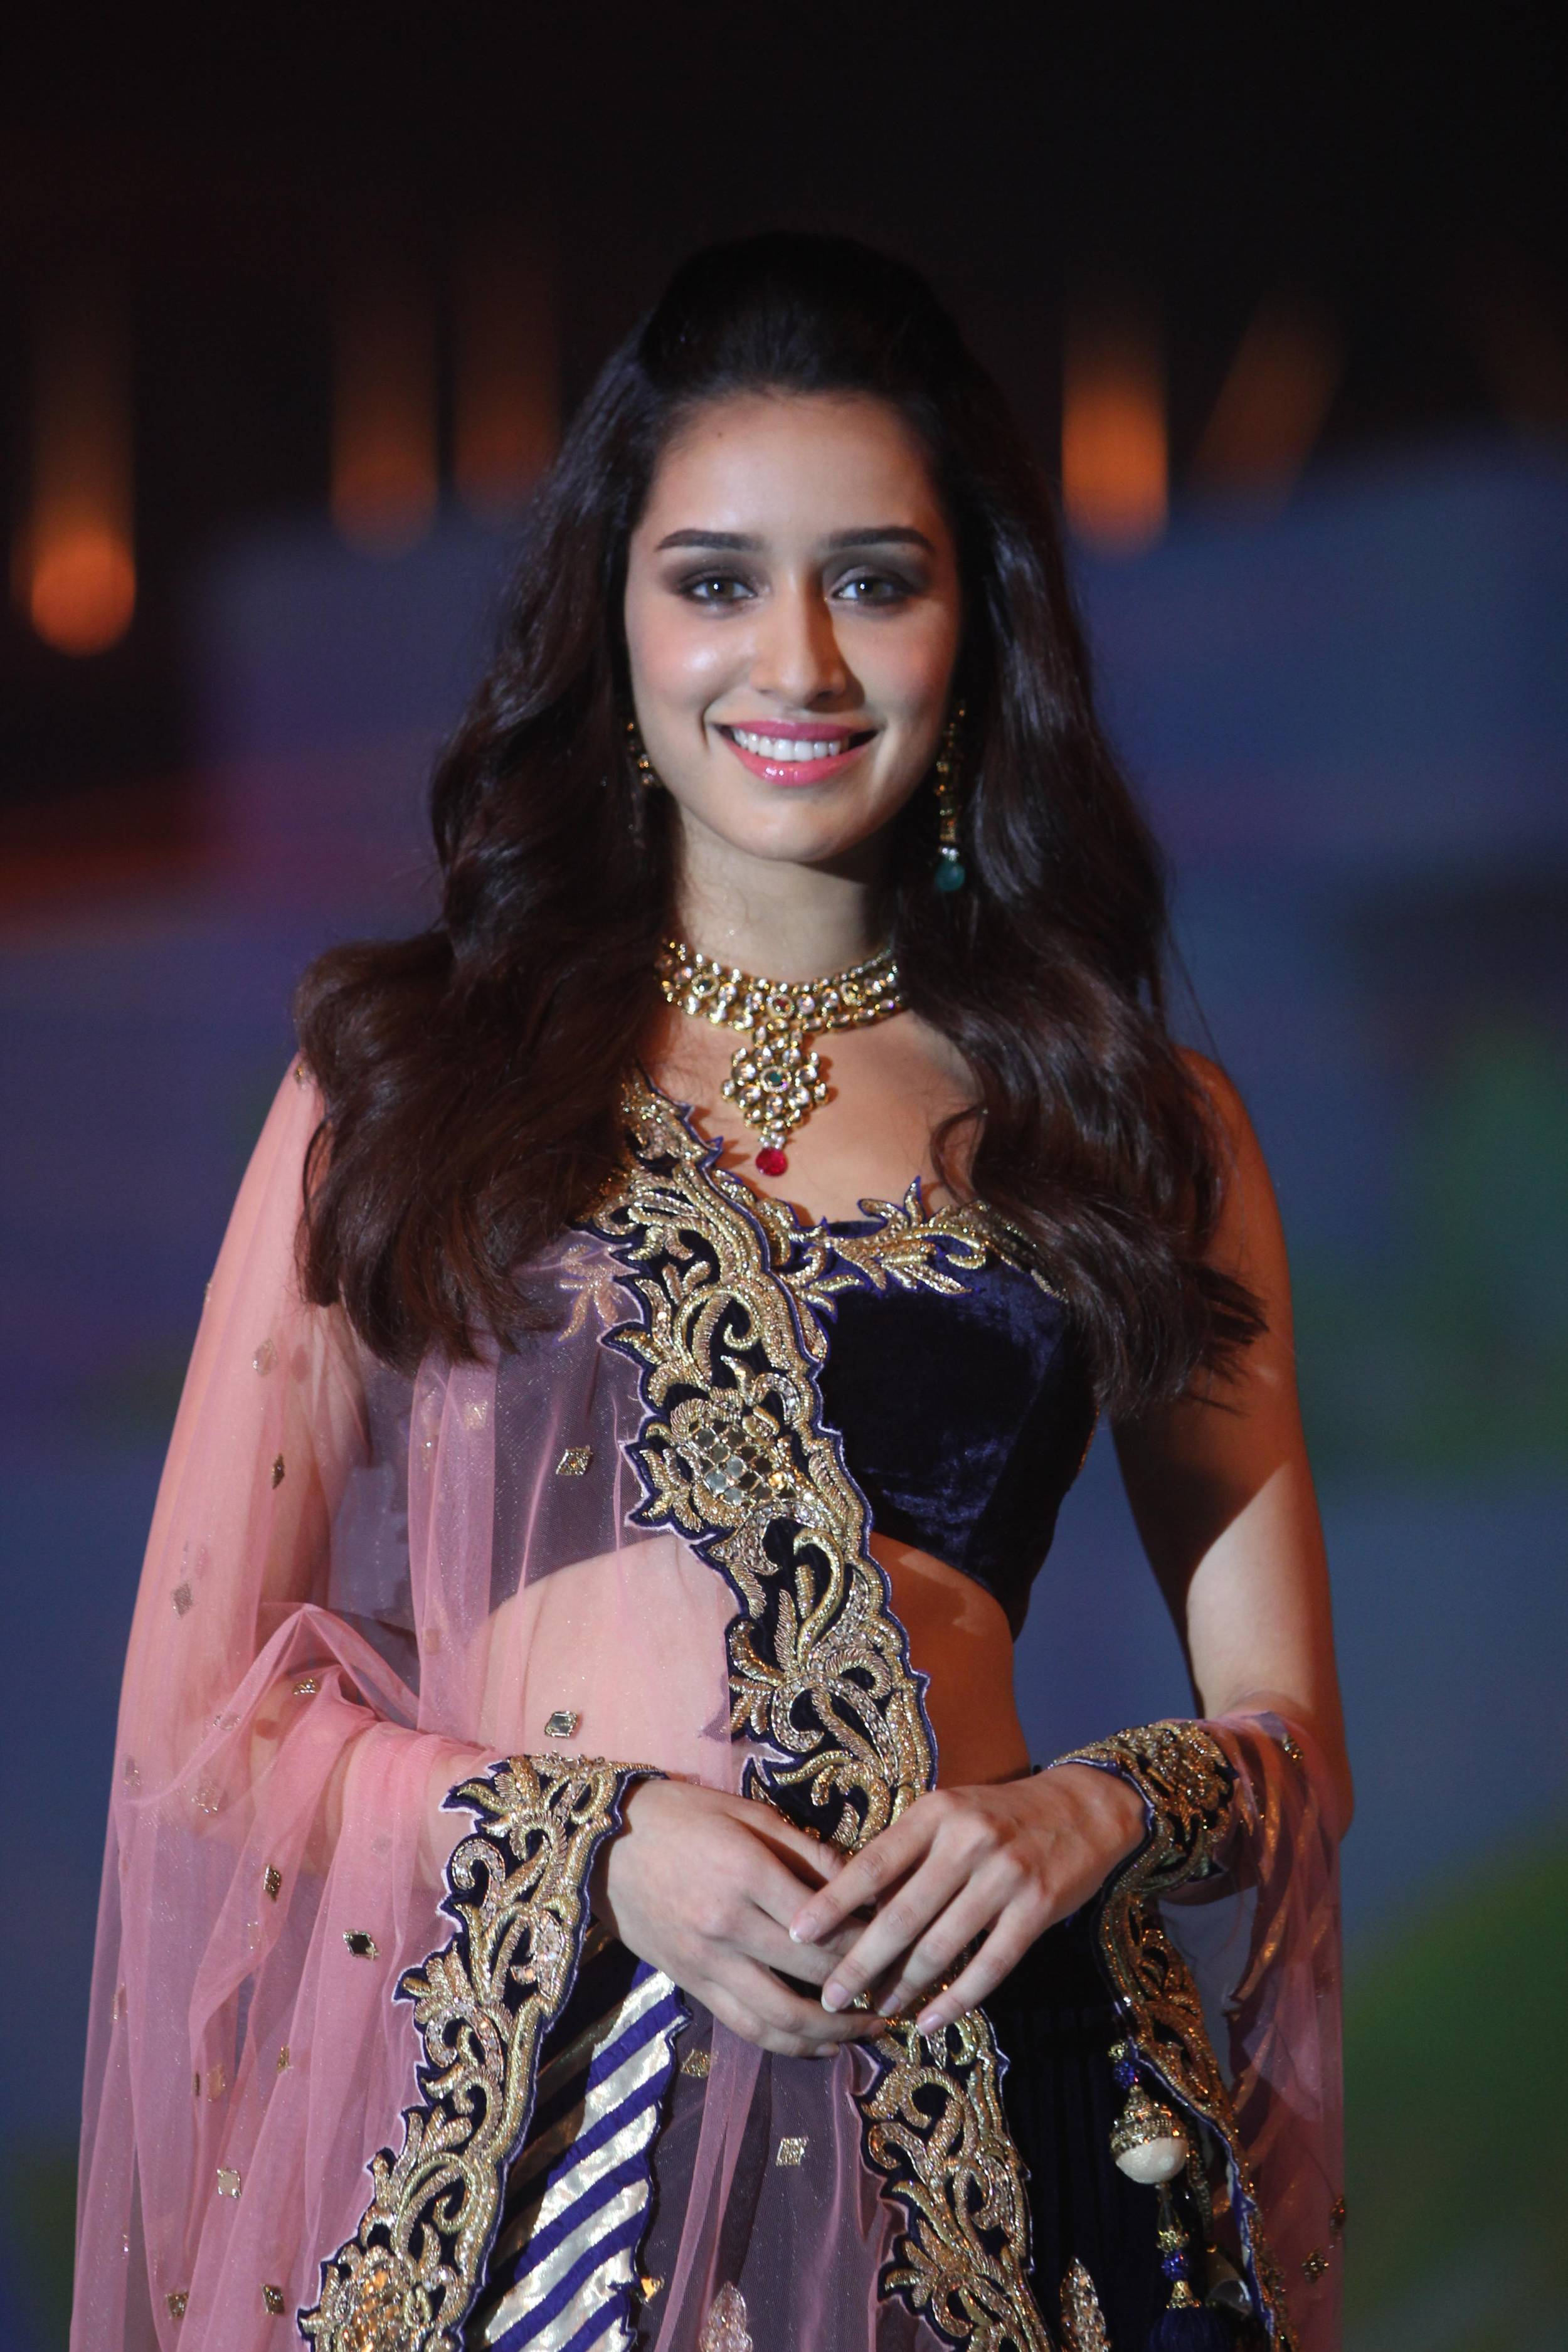 Shraddha Kapoor Full Hd 4k Wallpaper Download Vinnyoleo Vegetal